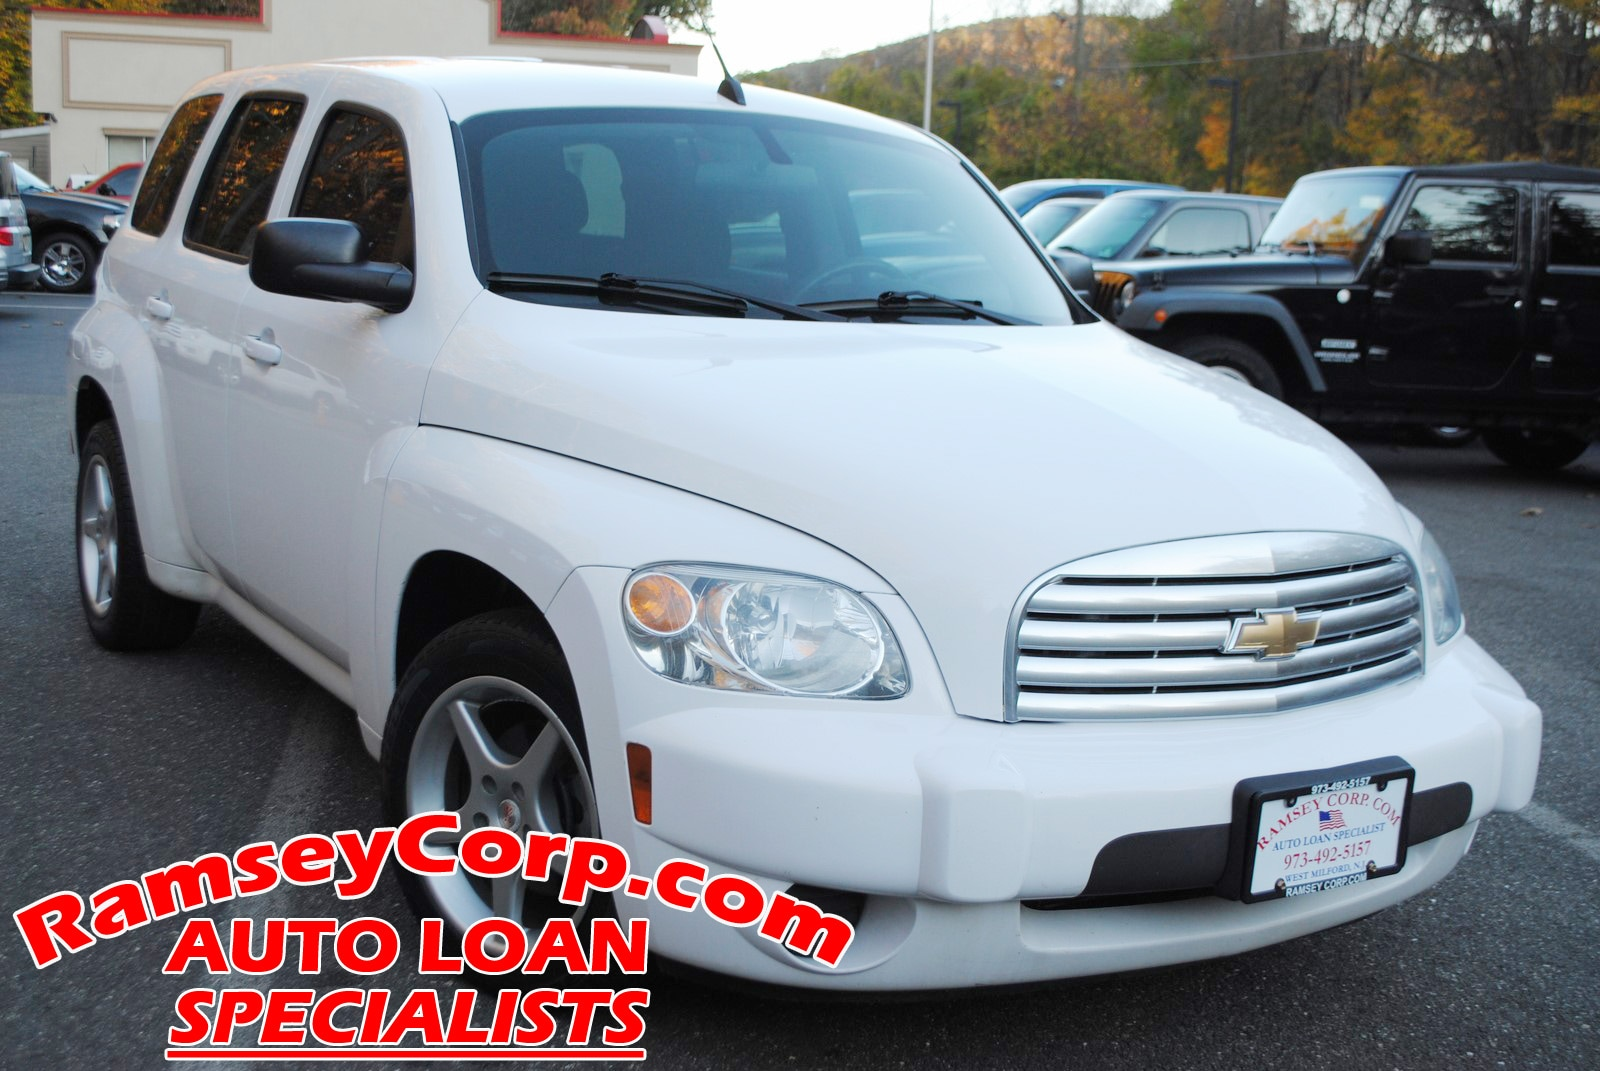 All Chevy 2010 chevy hhr problems : 50 Best New York Used Chevrolet HHR for Sale, Savings from $3,069